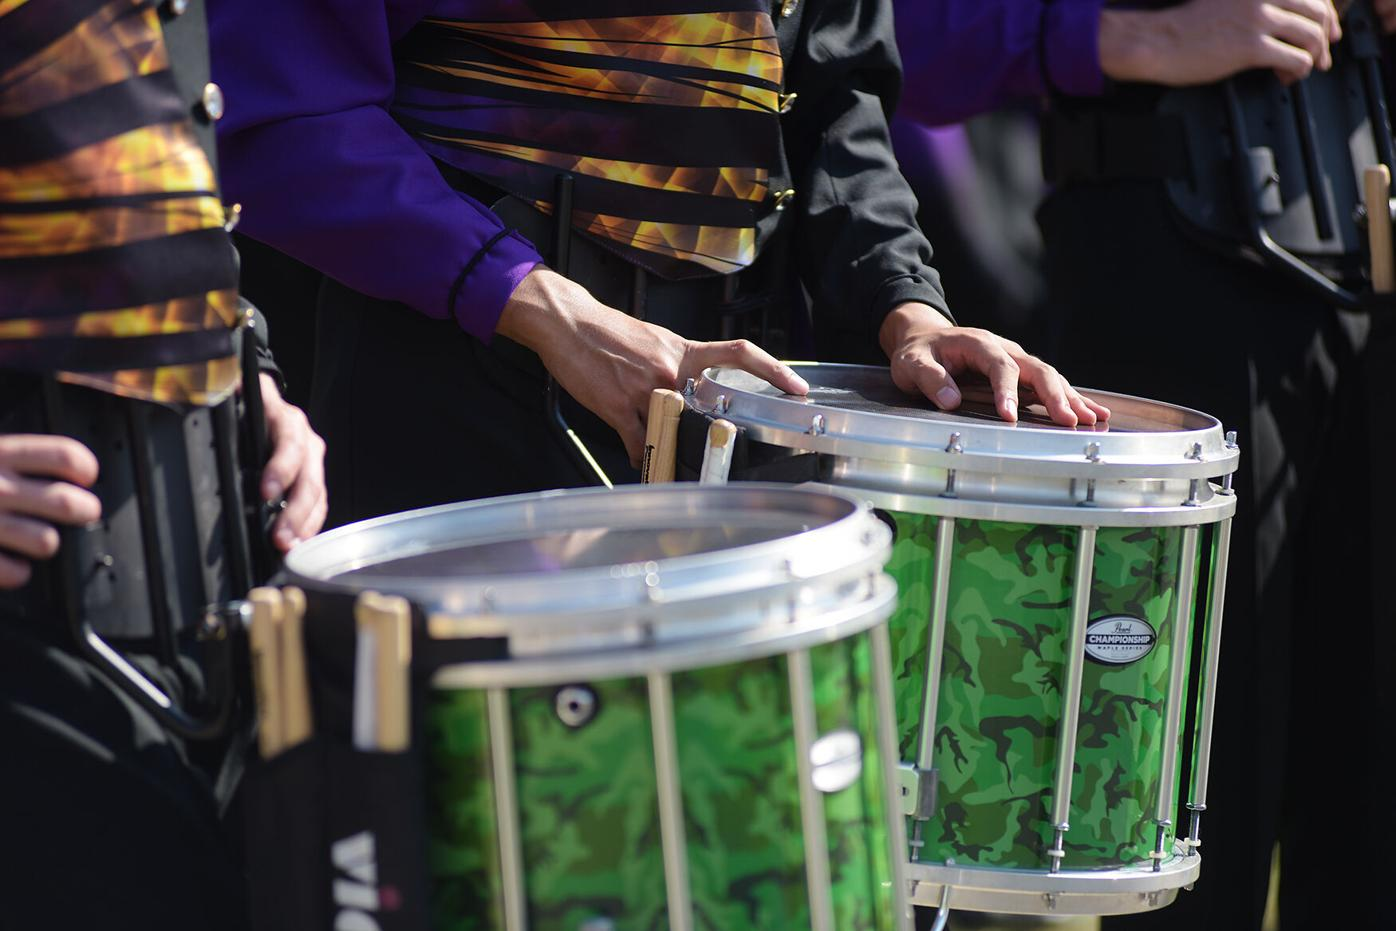 Hickman percussionists line up to play